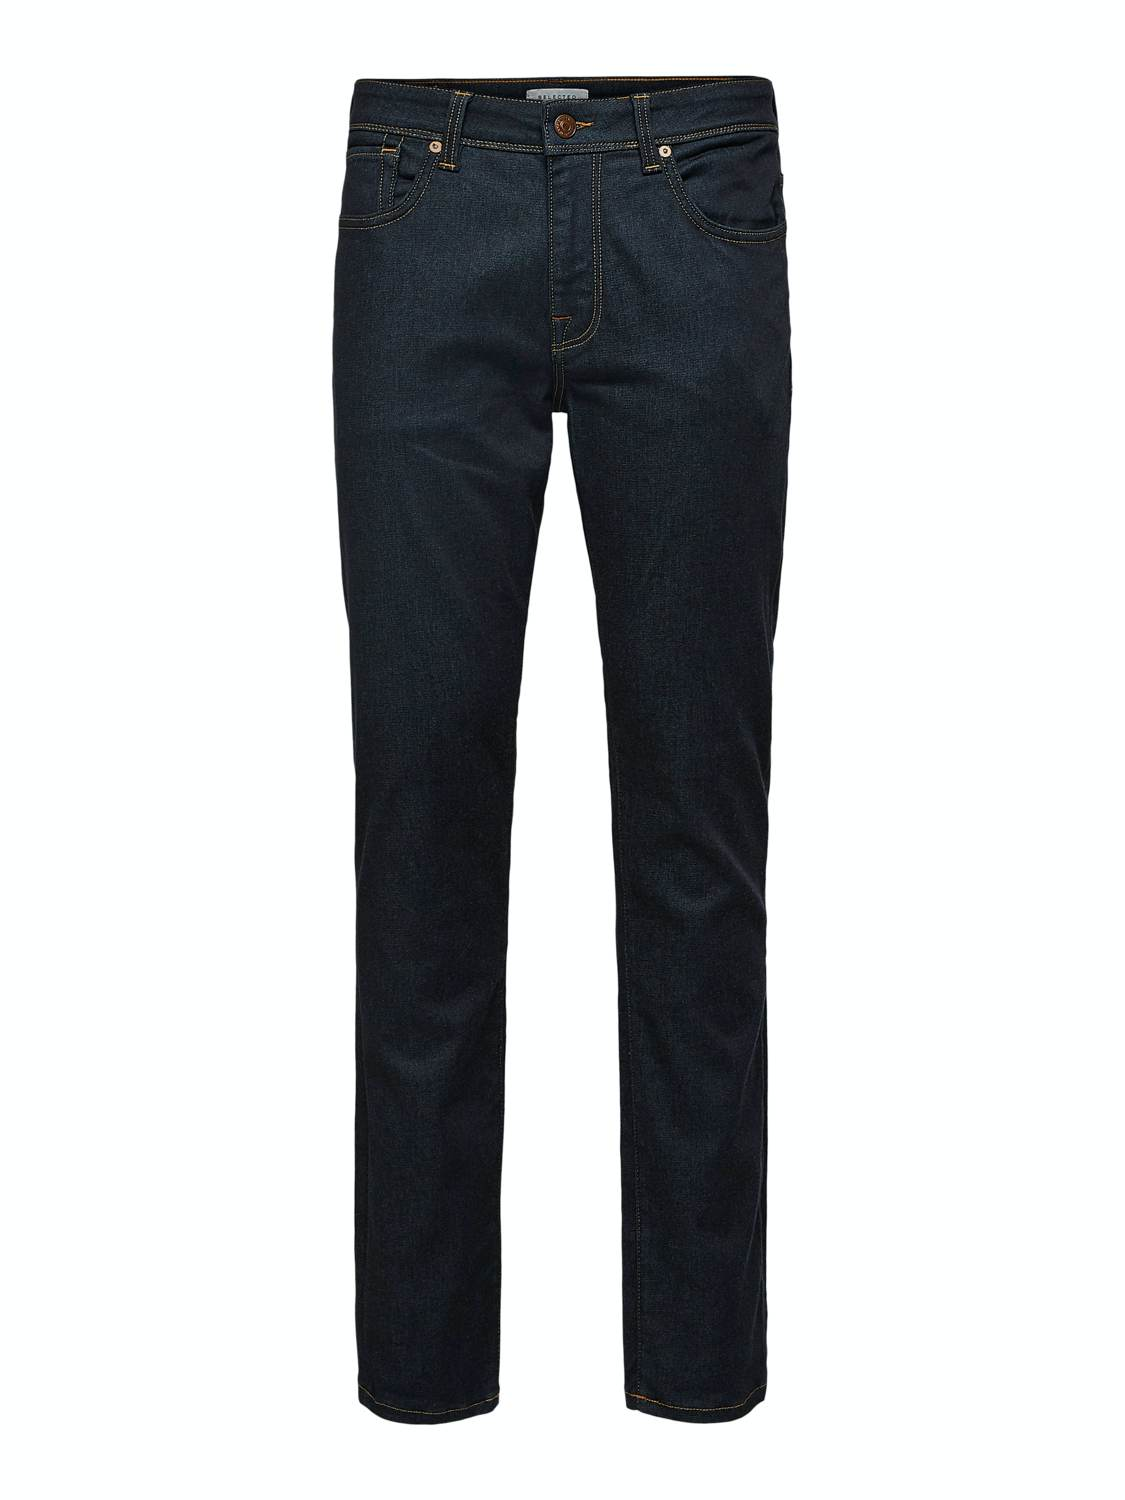 Selected Jeans - Slhslim-Leon 6234 Rinse Blue | GATE 36 Hobro